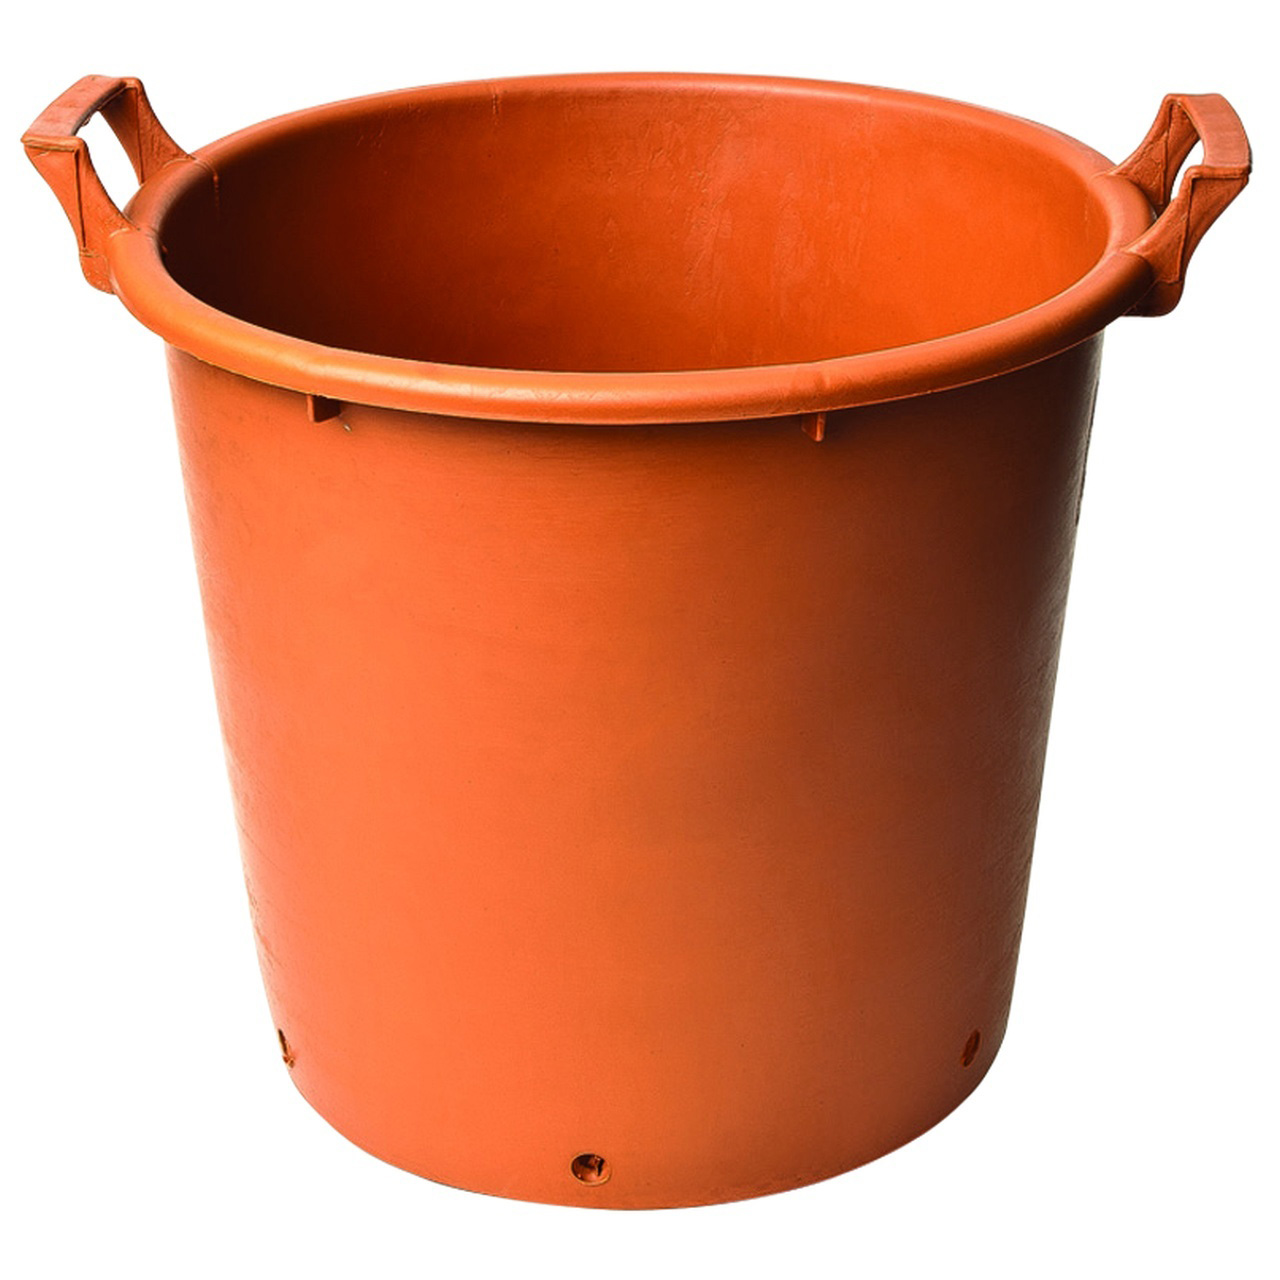 Terracotta heavy duty container with handles - Nuova Pasquini & Bini